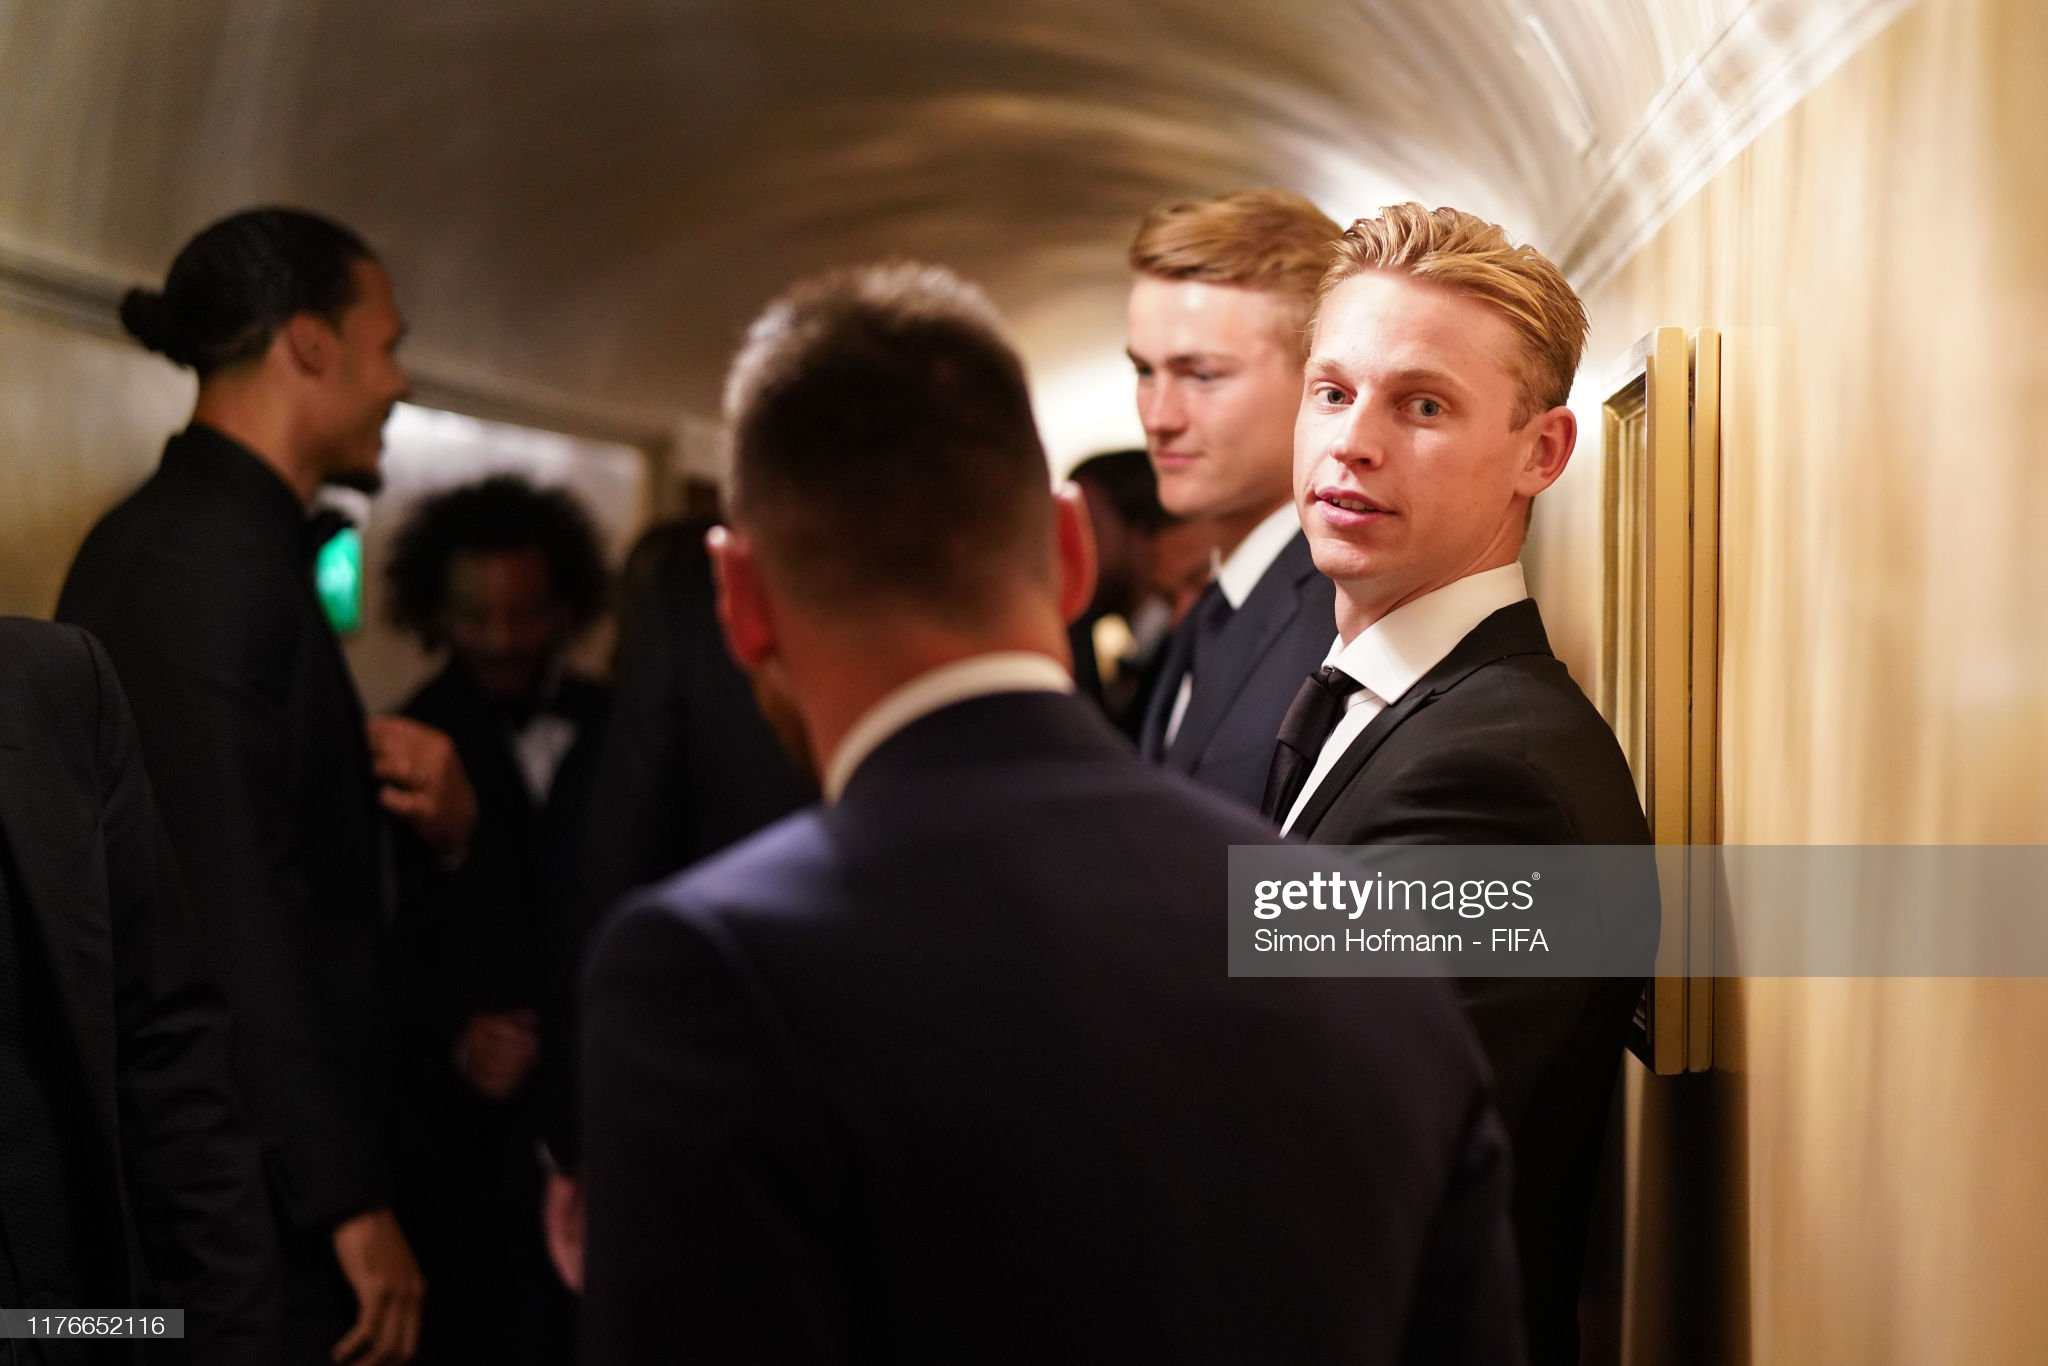 The Best FIFA Football Awards 2019 The-fifa-fifpro-mens-world11-award-winner-frenkie-de-jong-of-and-picture-id1176652116?s=2048x2048